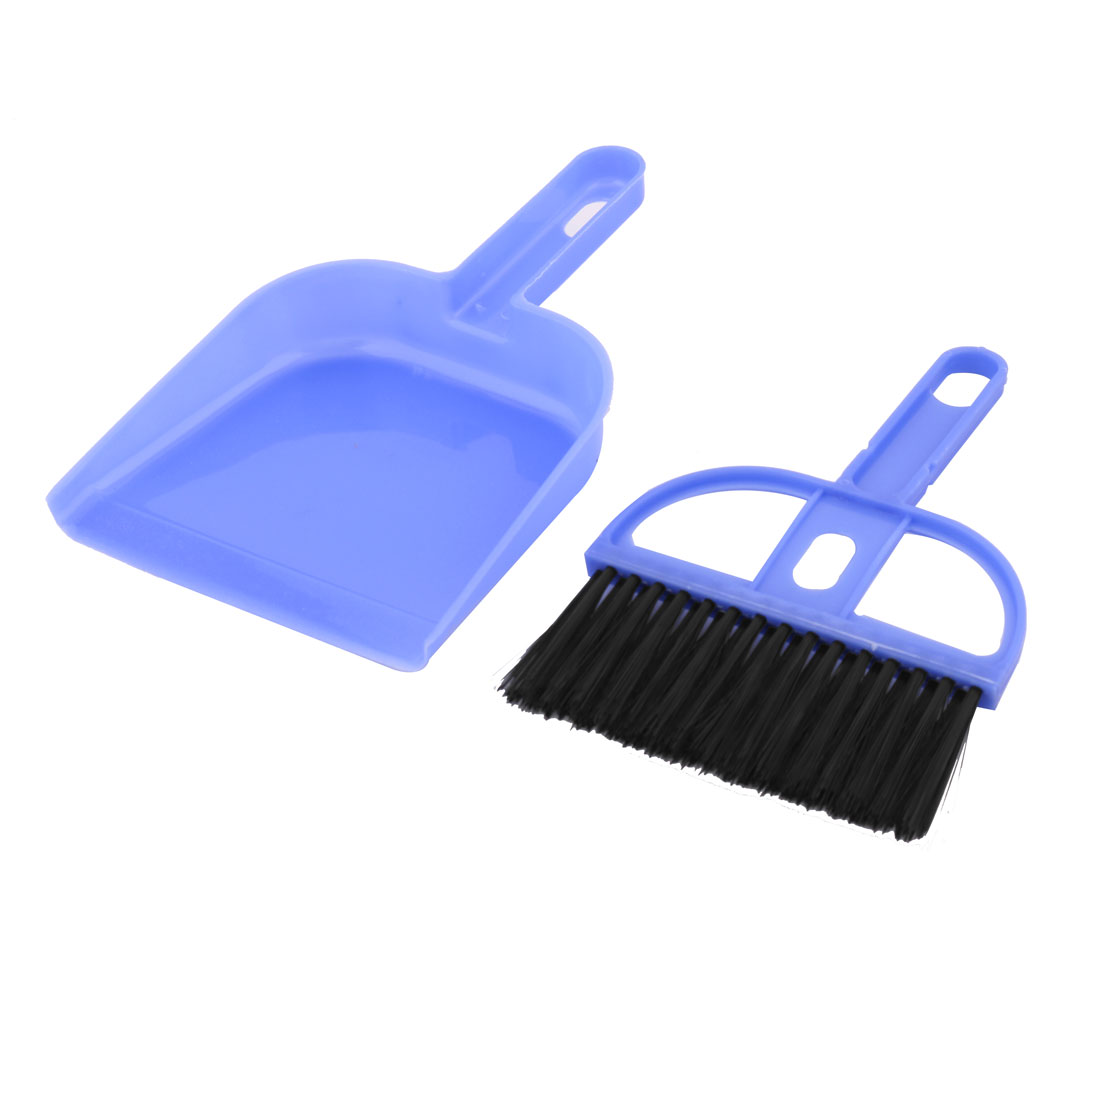 Computer Laptop Desktop Keyboard Cleaning Brush Besom Broom Cleaner Dustpan Set Blue